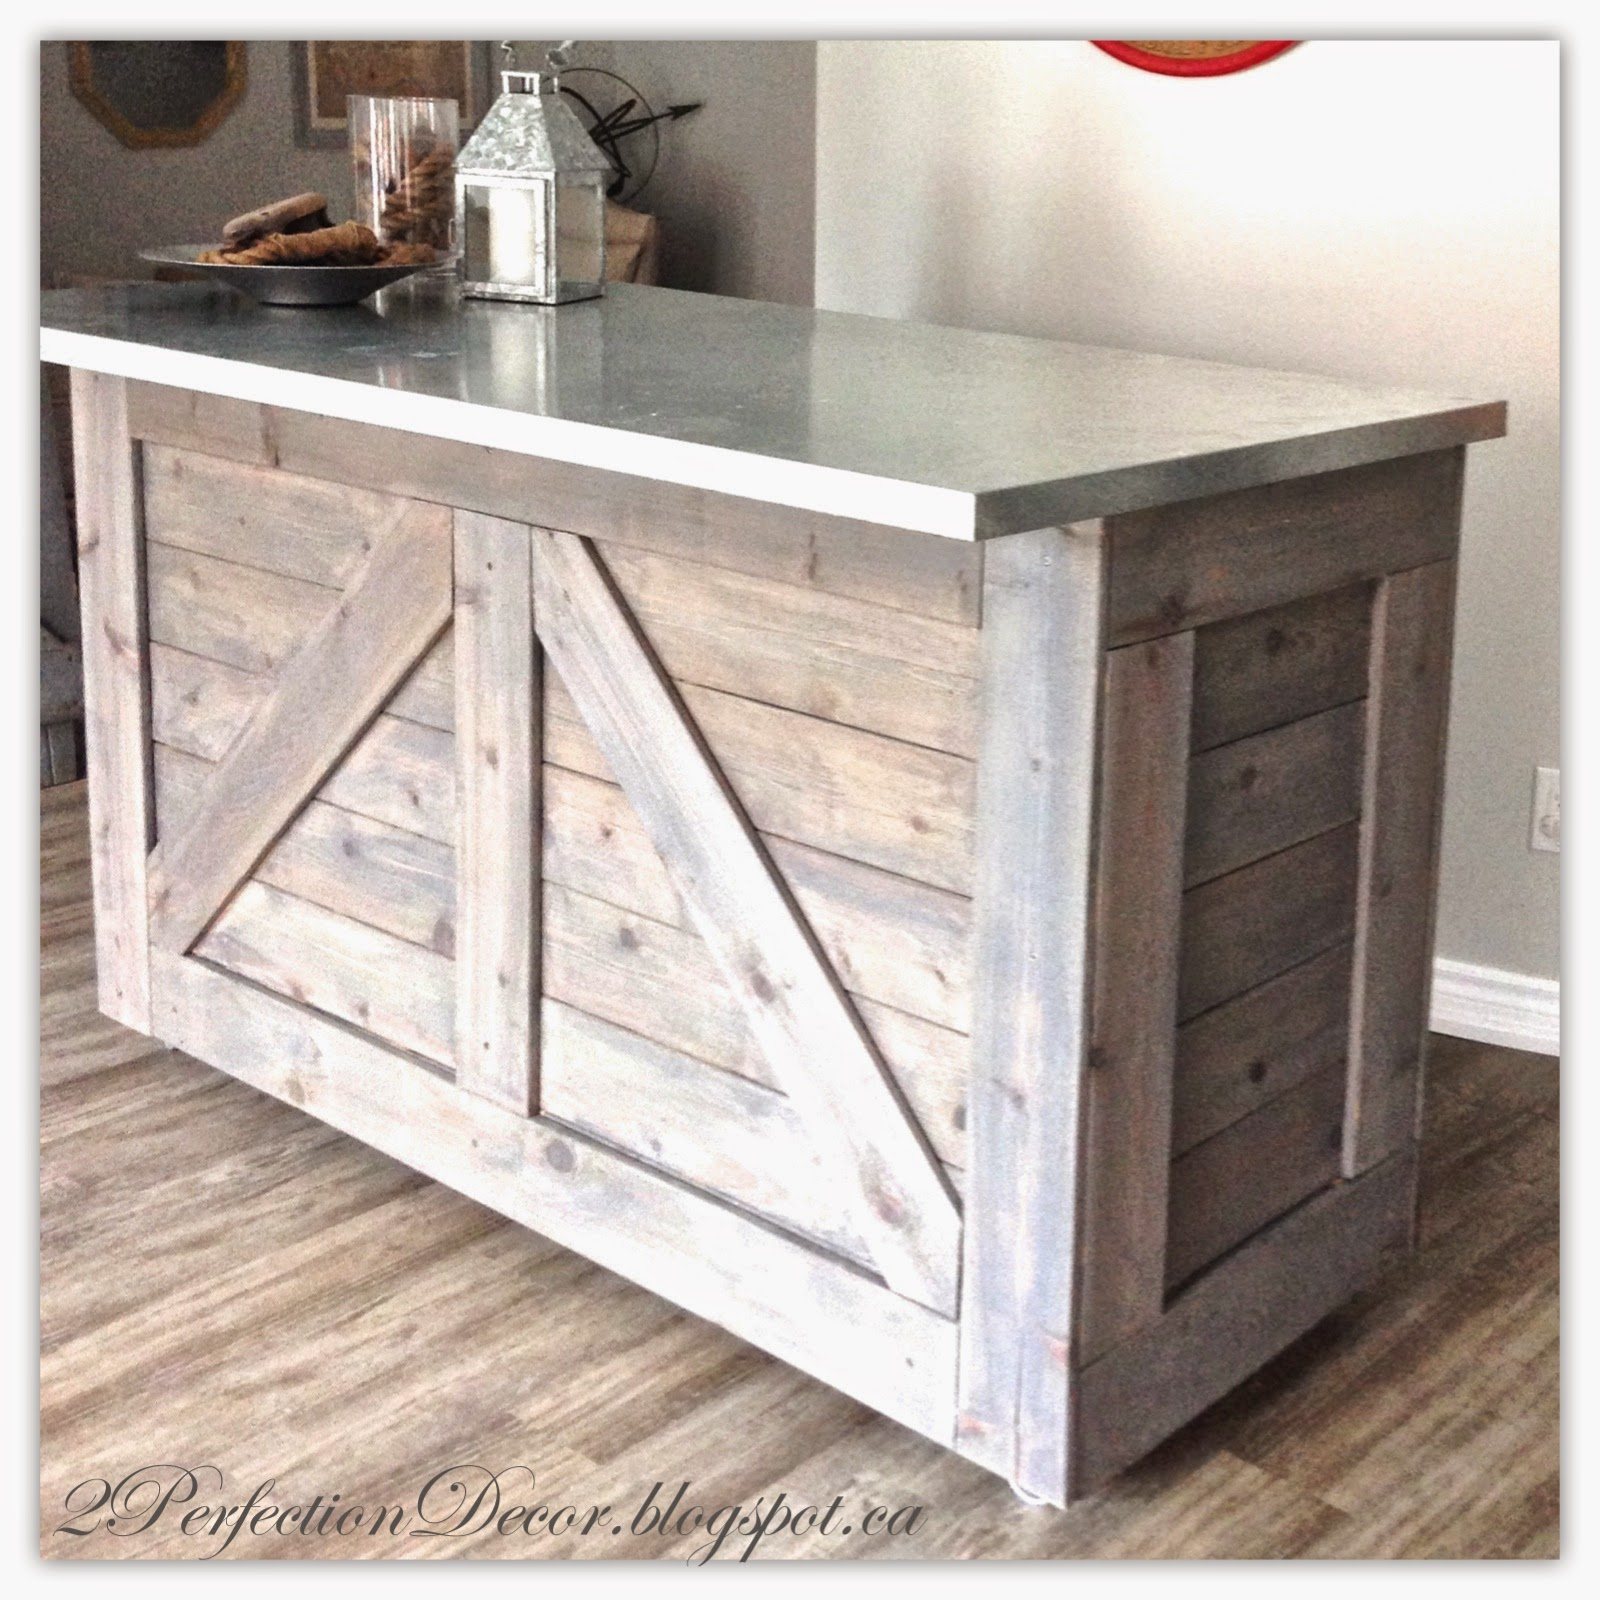 Ikea Hack Rustic Bar With Galvanized Metal Top Remodelaholic  # Collection Meubles Varde Ikea